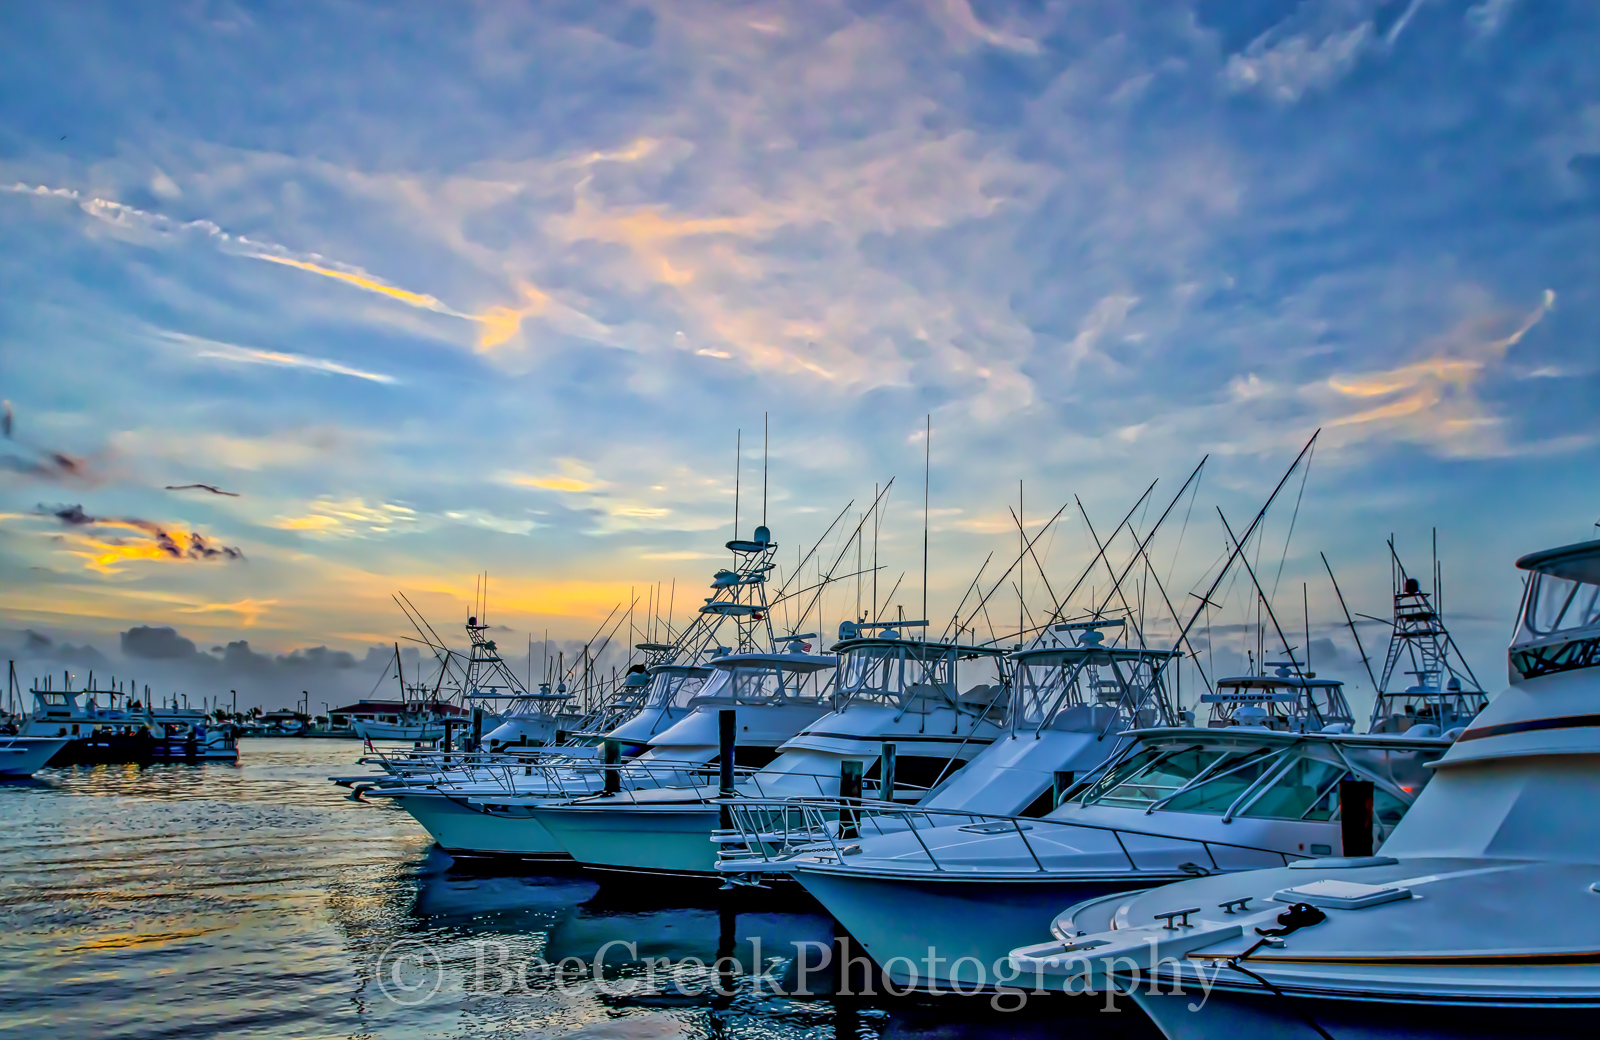 Port A, Texas Coast, boats, coastal, color, fishing, fishing boat, landscape, marina, nautical, seascape, seashore, skys, sunset, texas, twilight, gulf cost images, Texas beaches, photo